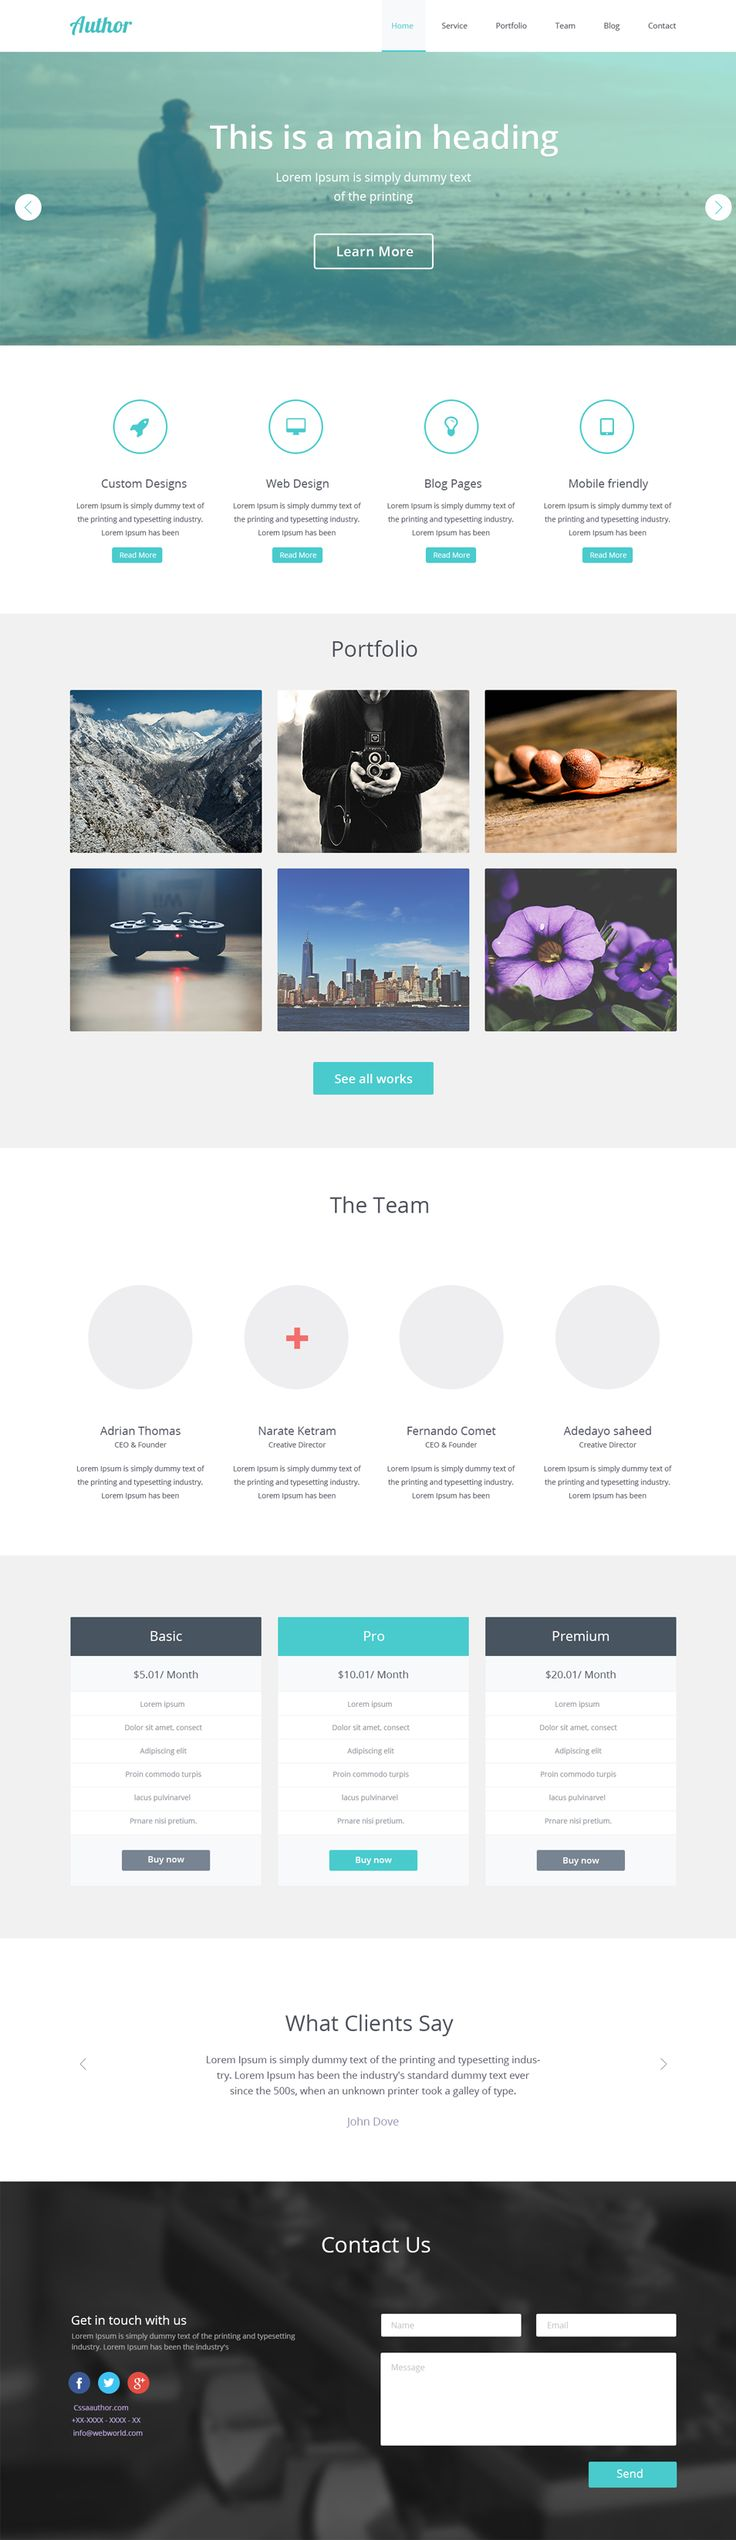 31 best images about beautiful free html templates on pinterest